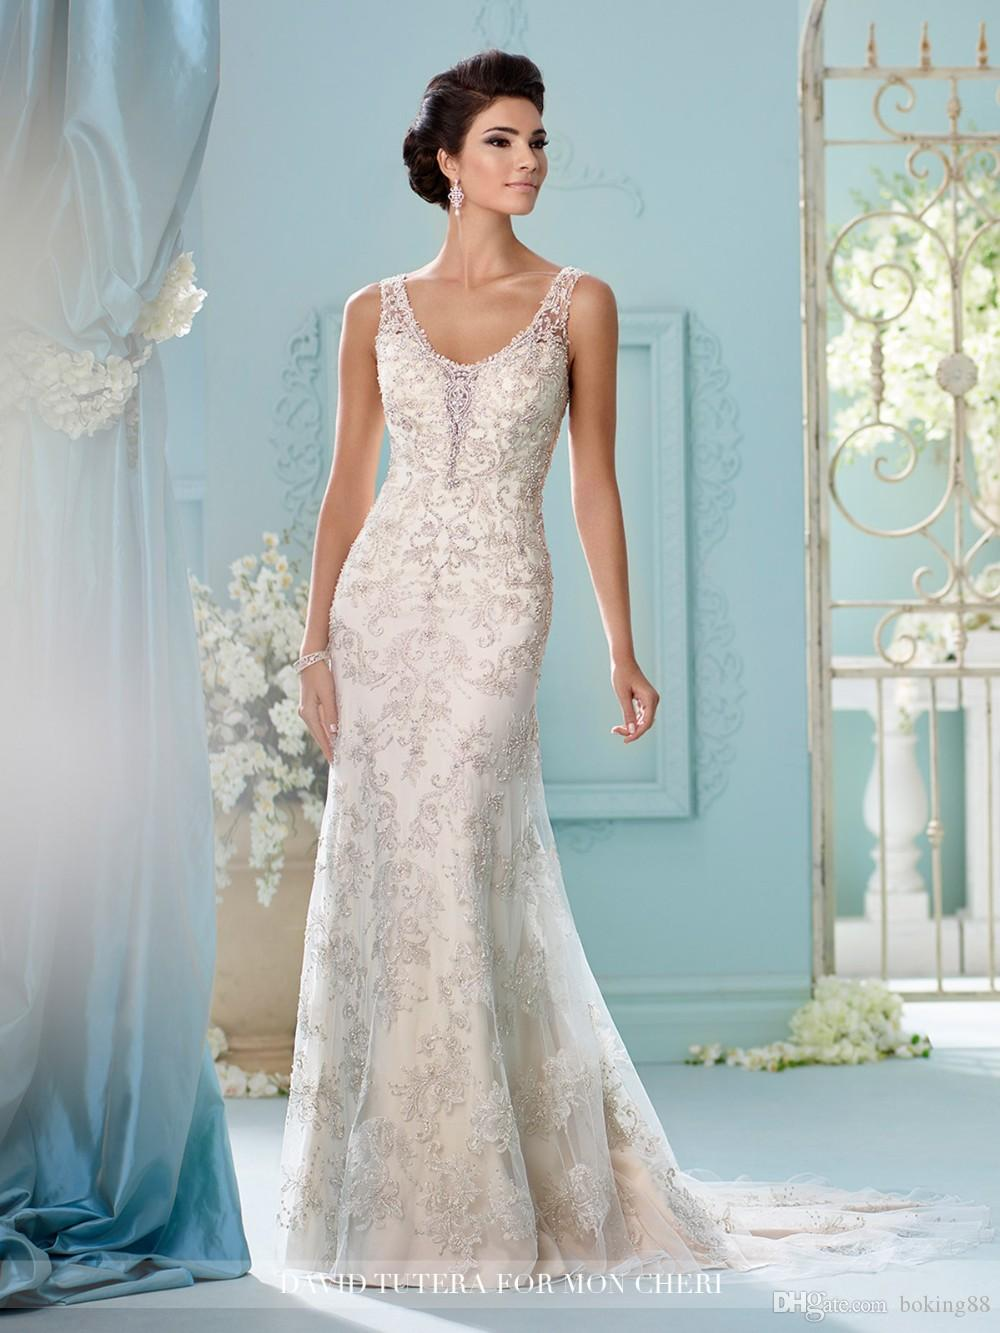 Tulle Over Satin Sheath Wedding Dresses All Over Hand Beaded ...